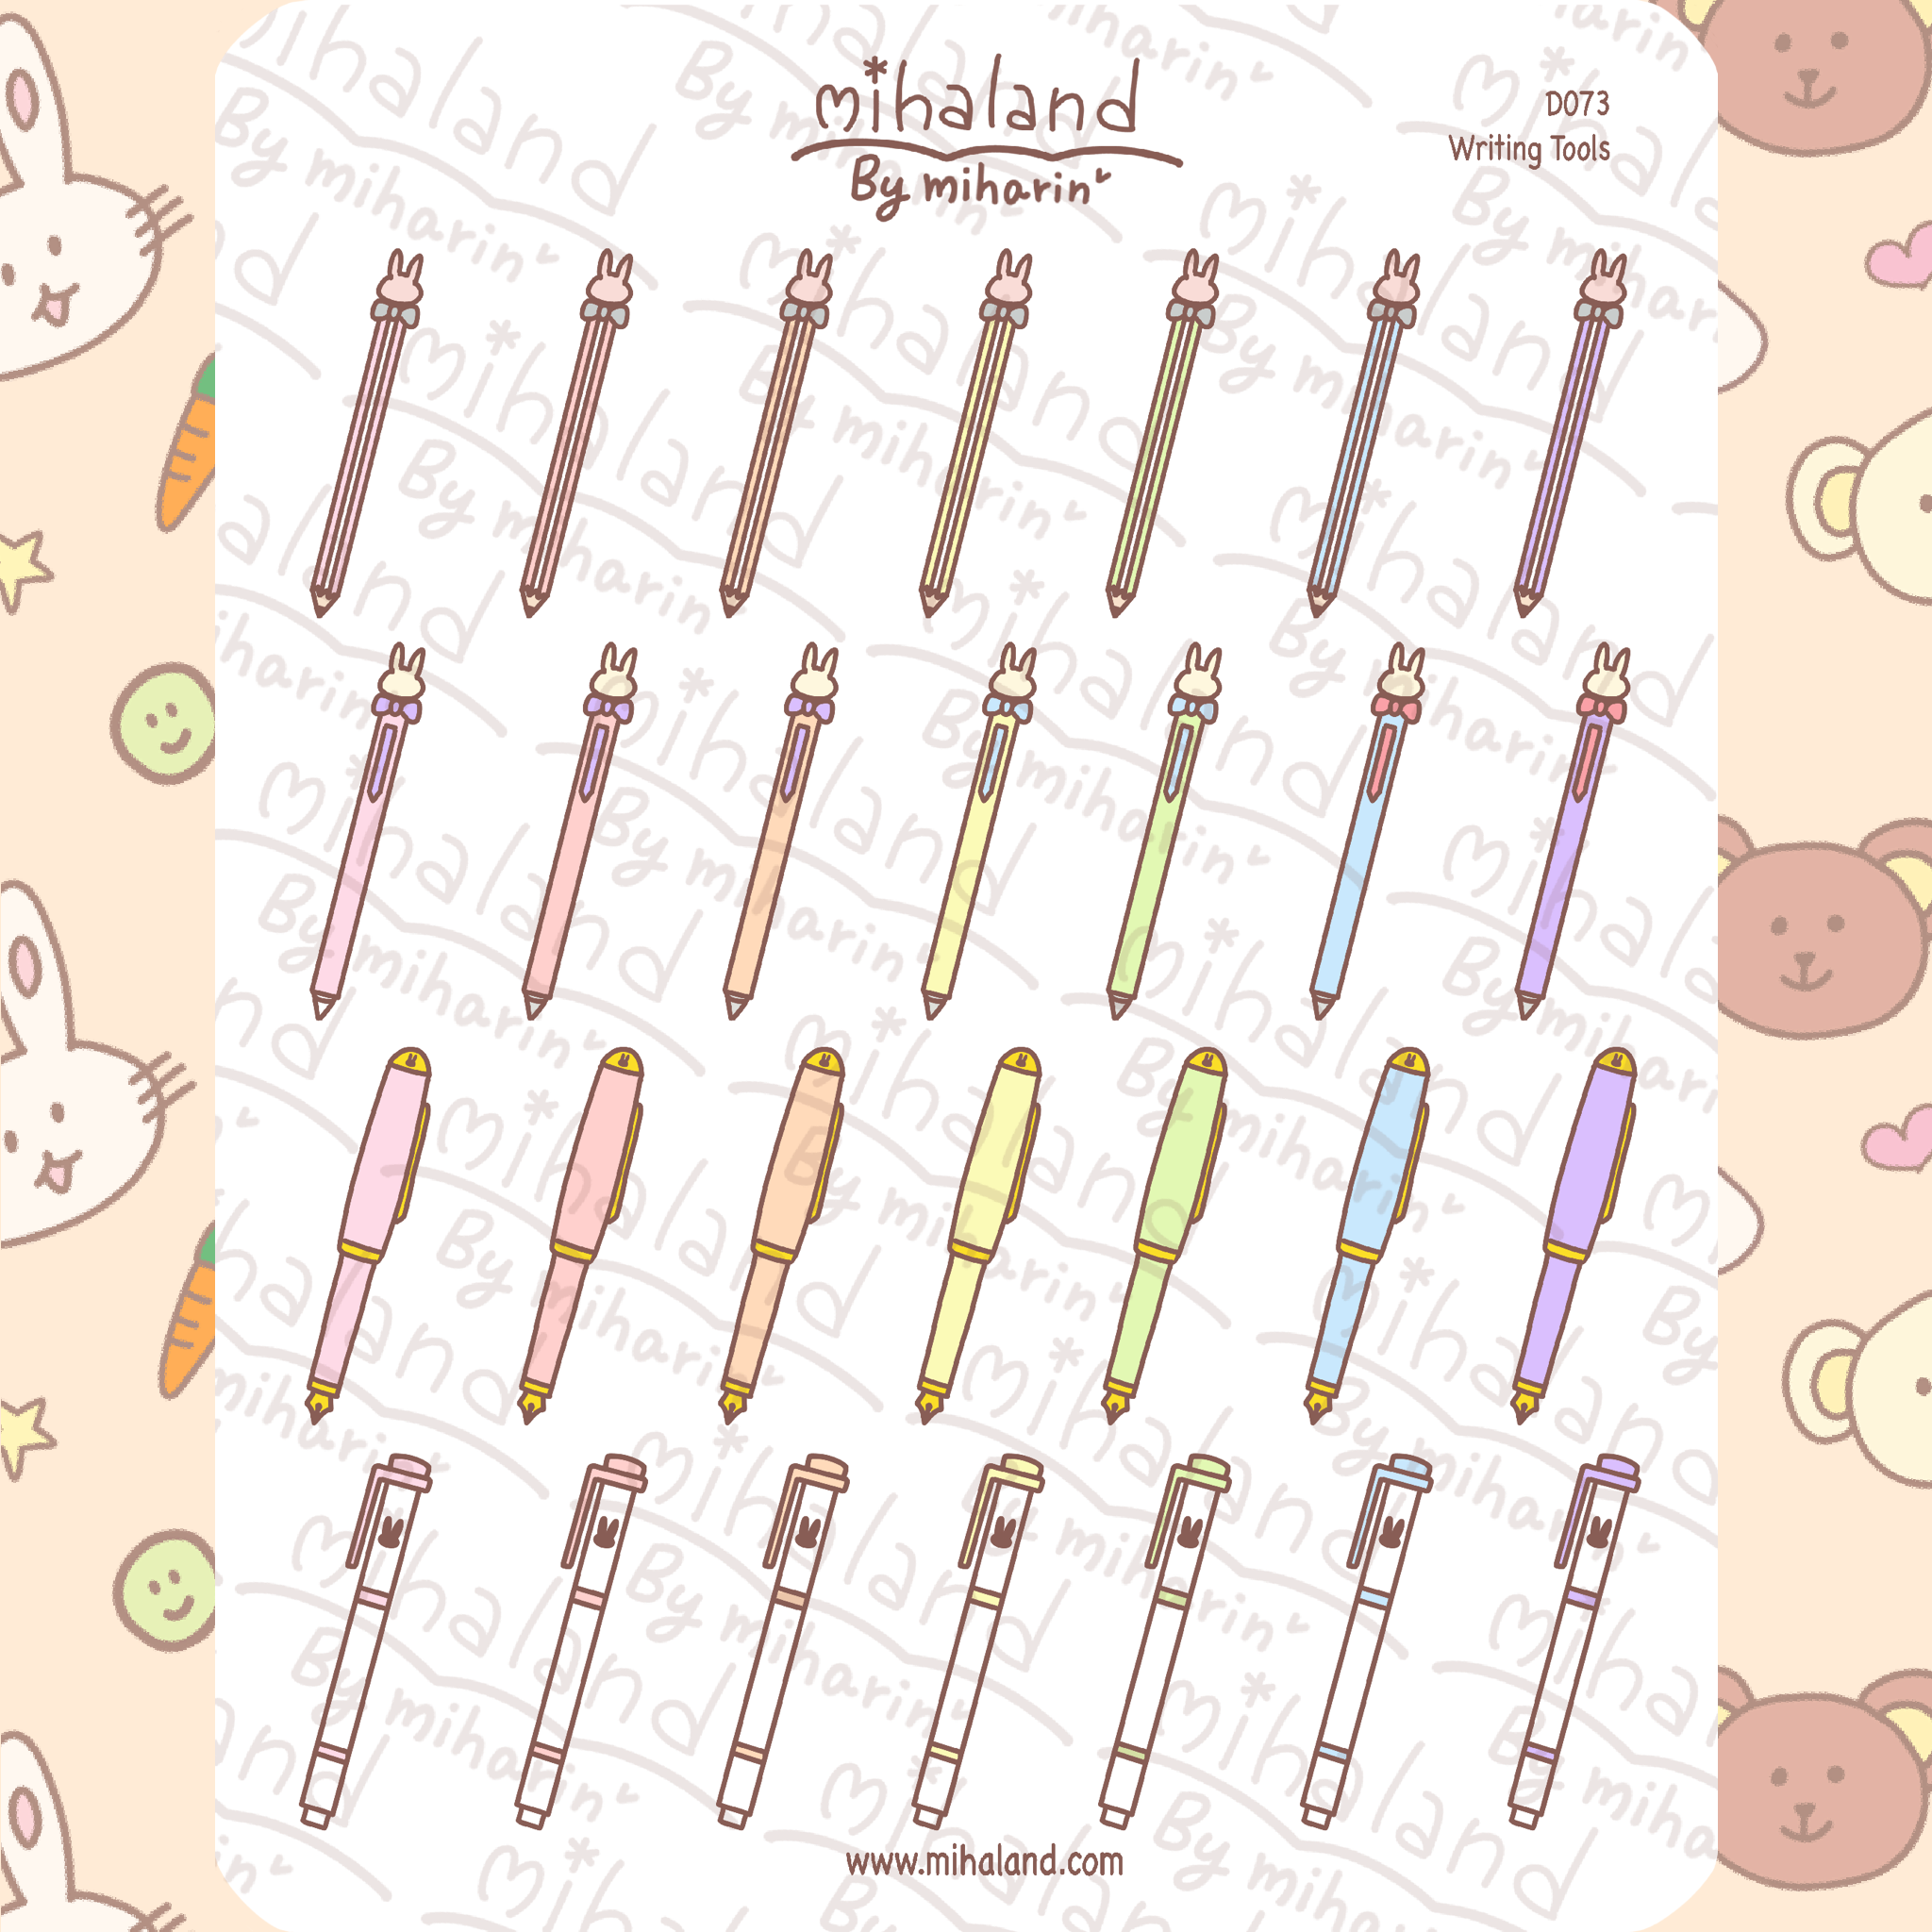 mihaland - Writing Tools Planner Stickers (D073)